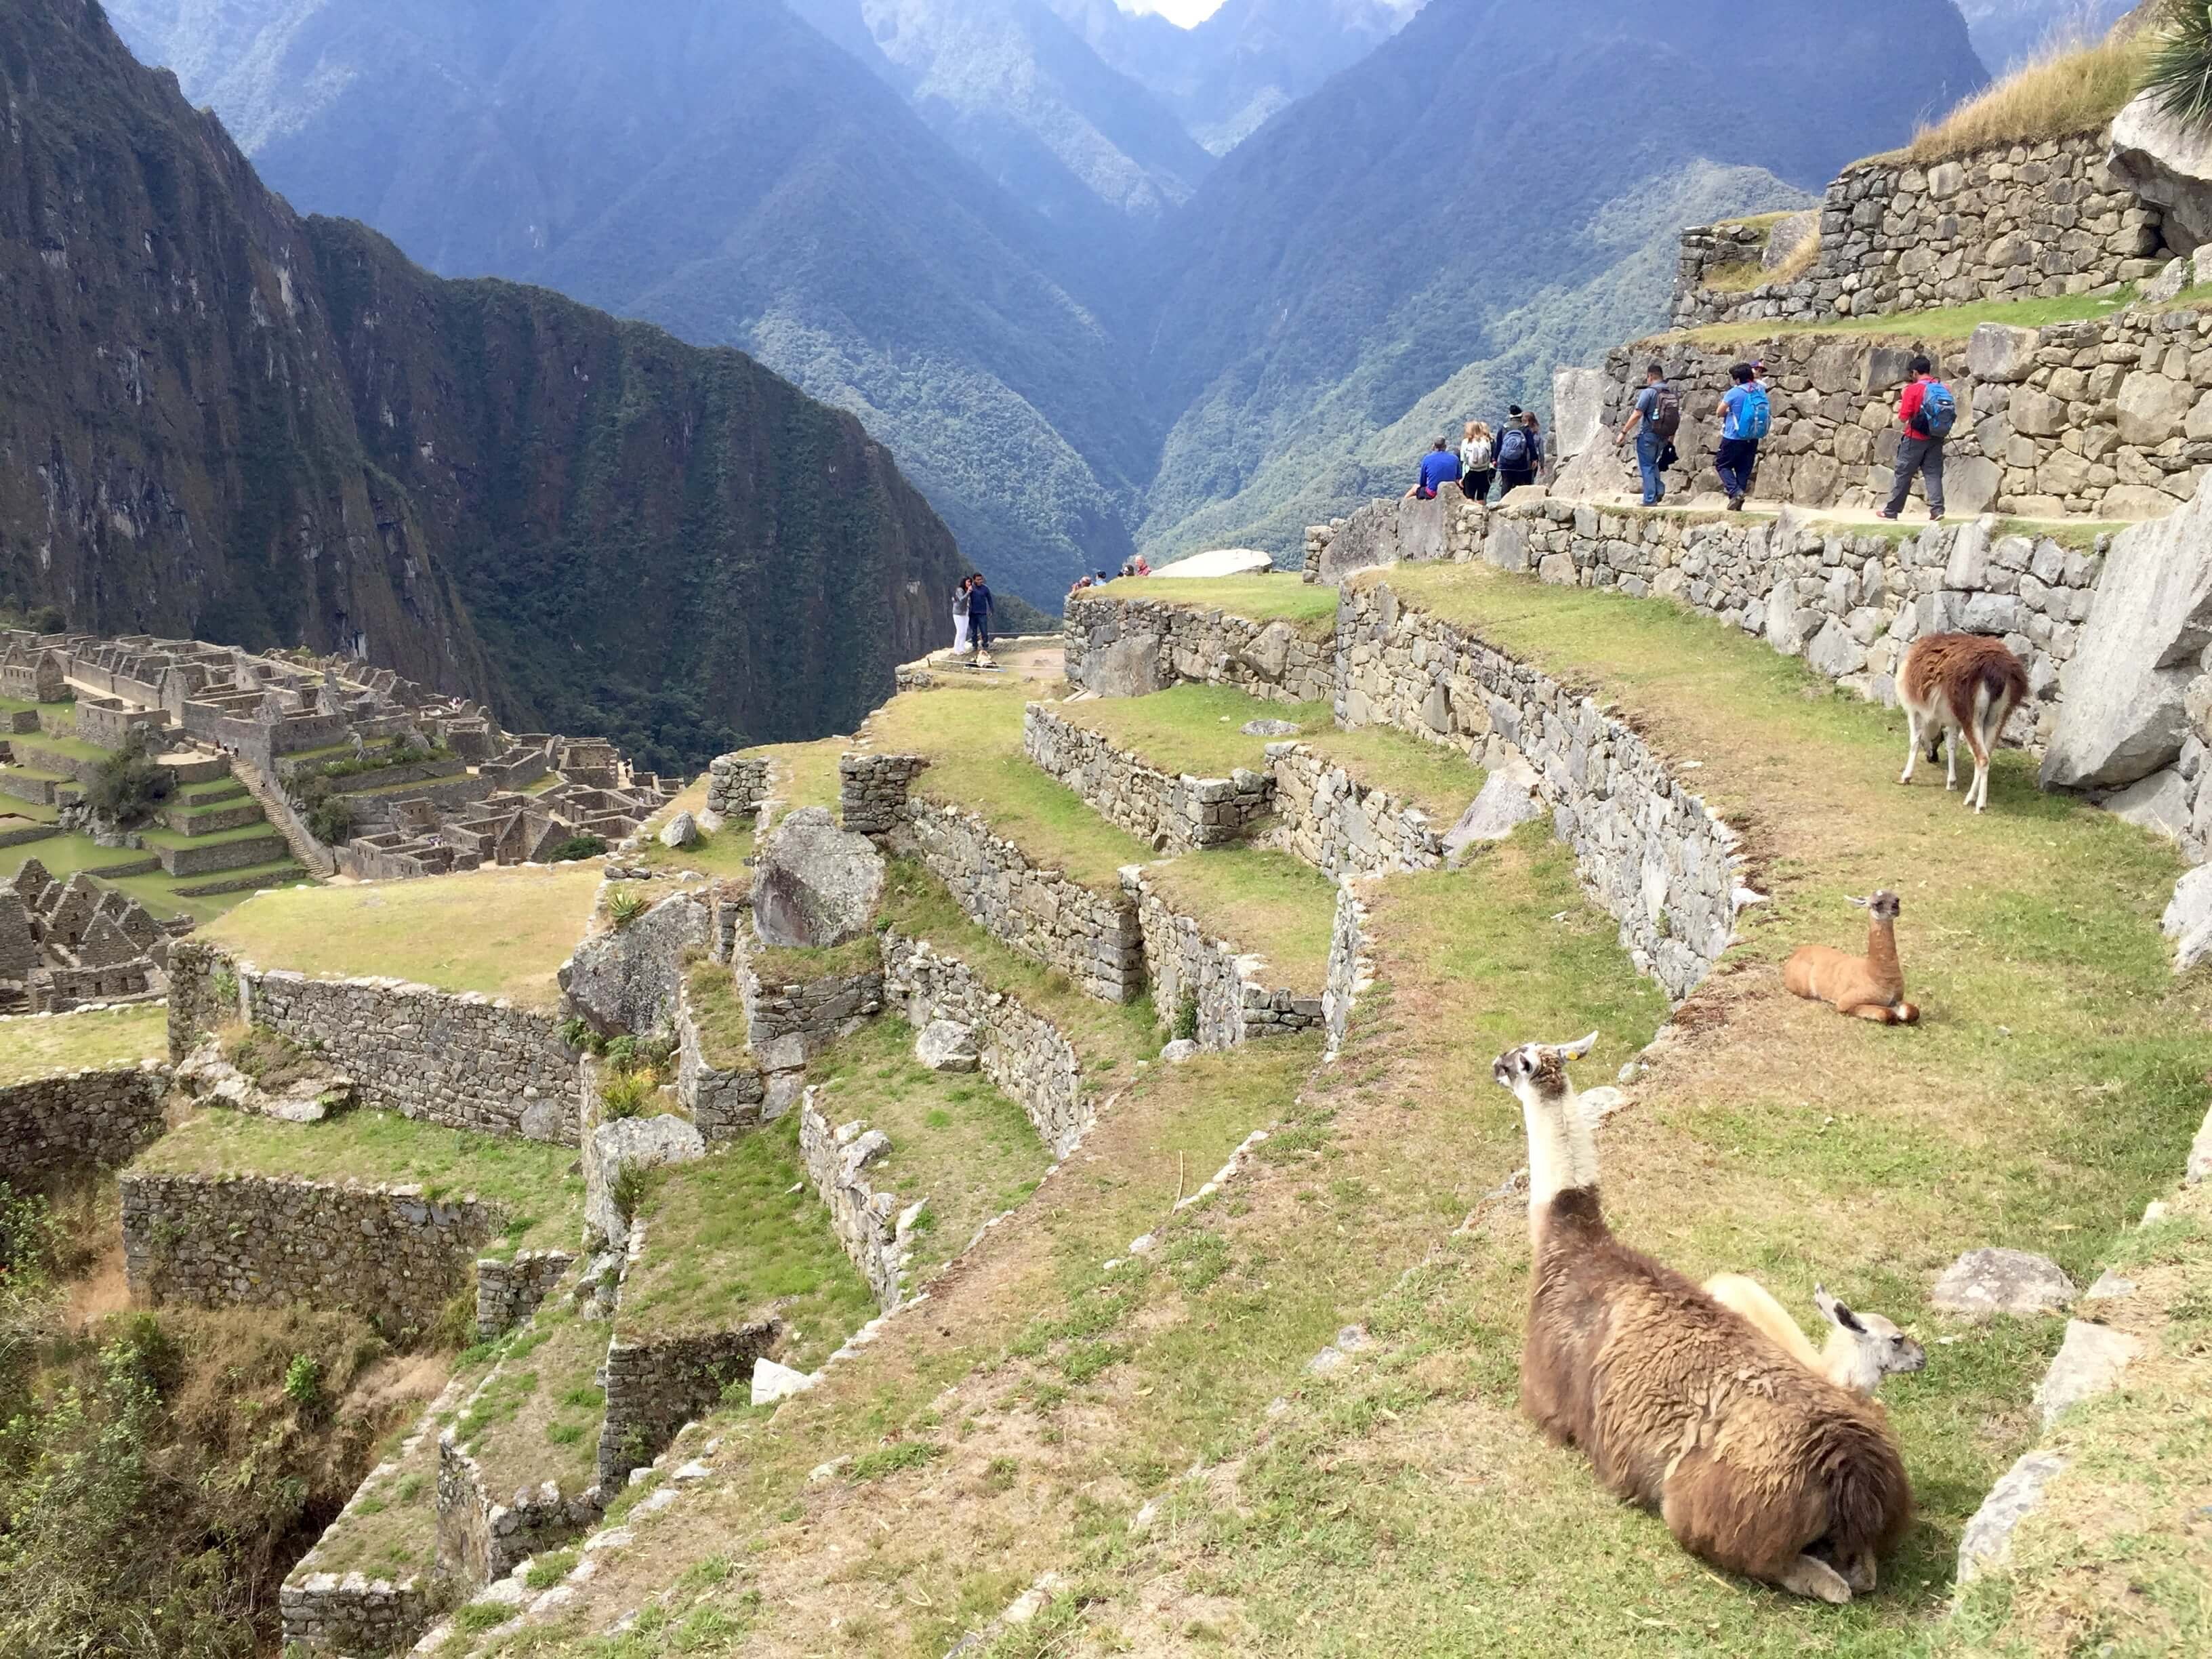 blog-10-facts-machu-picchu-llamas-on-terrace